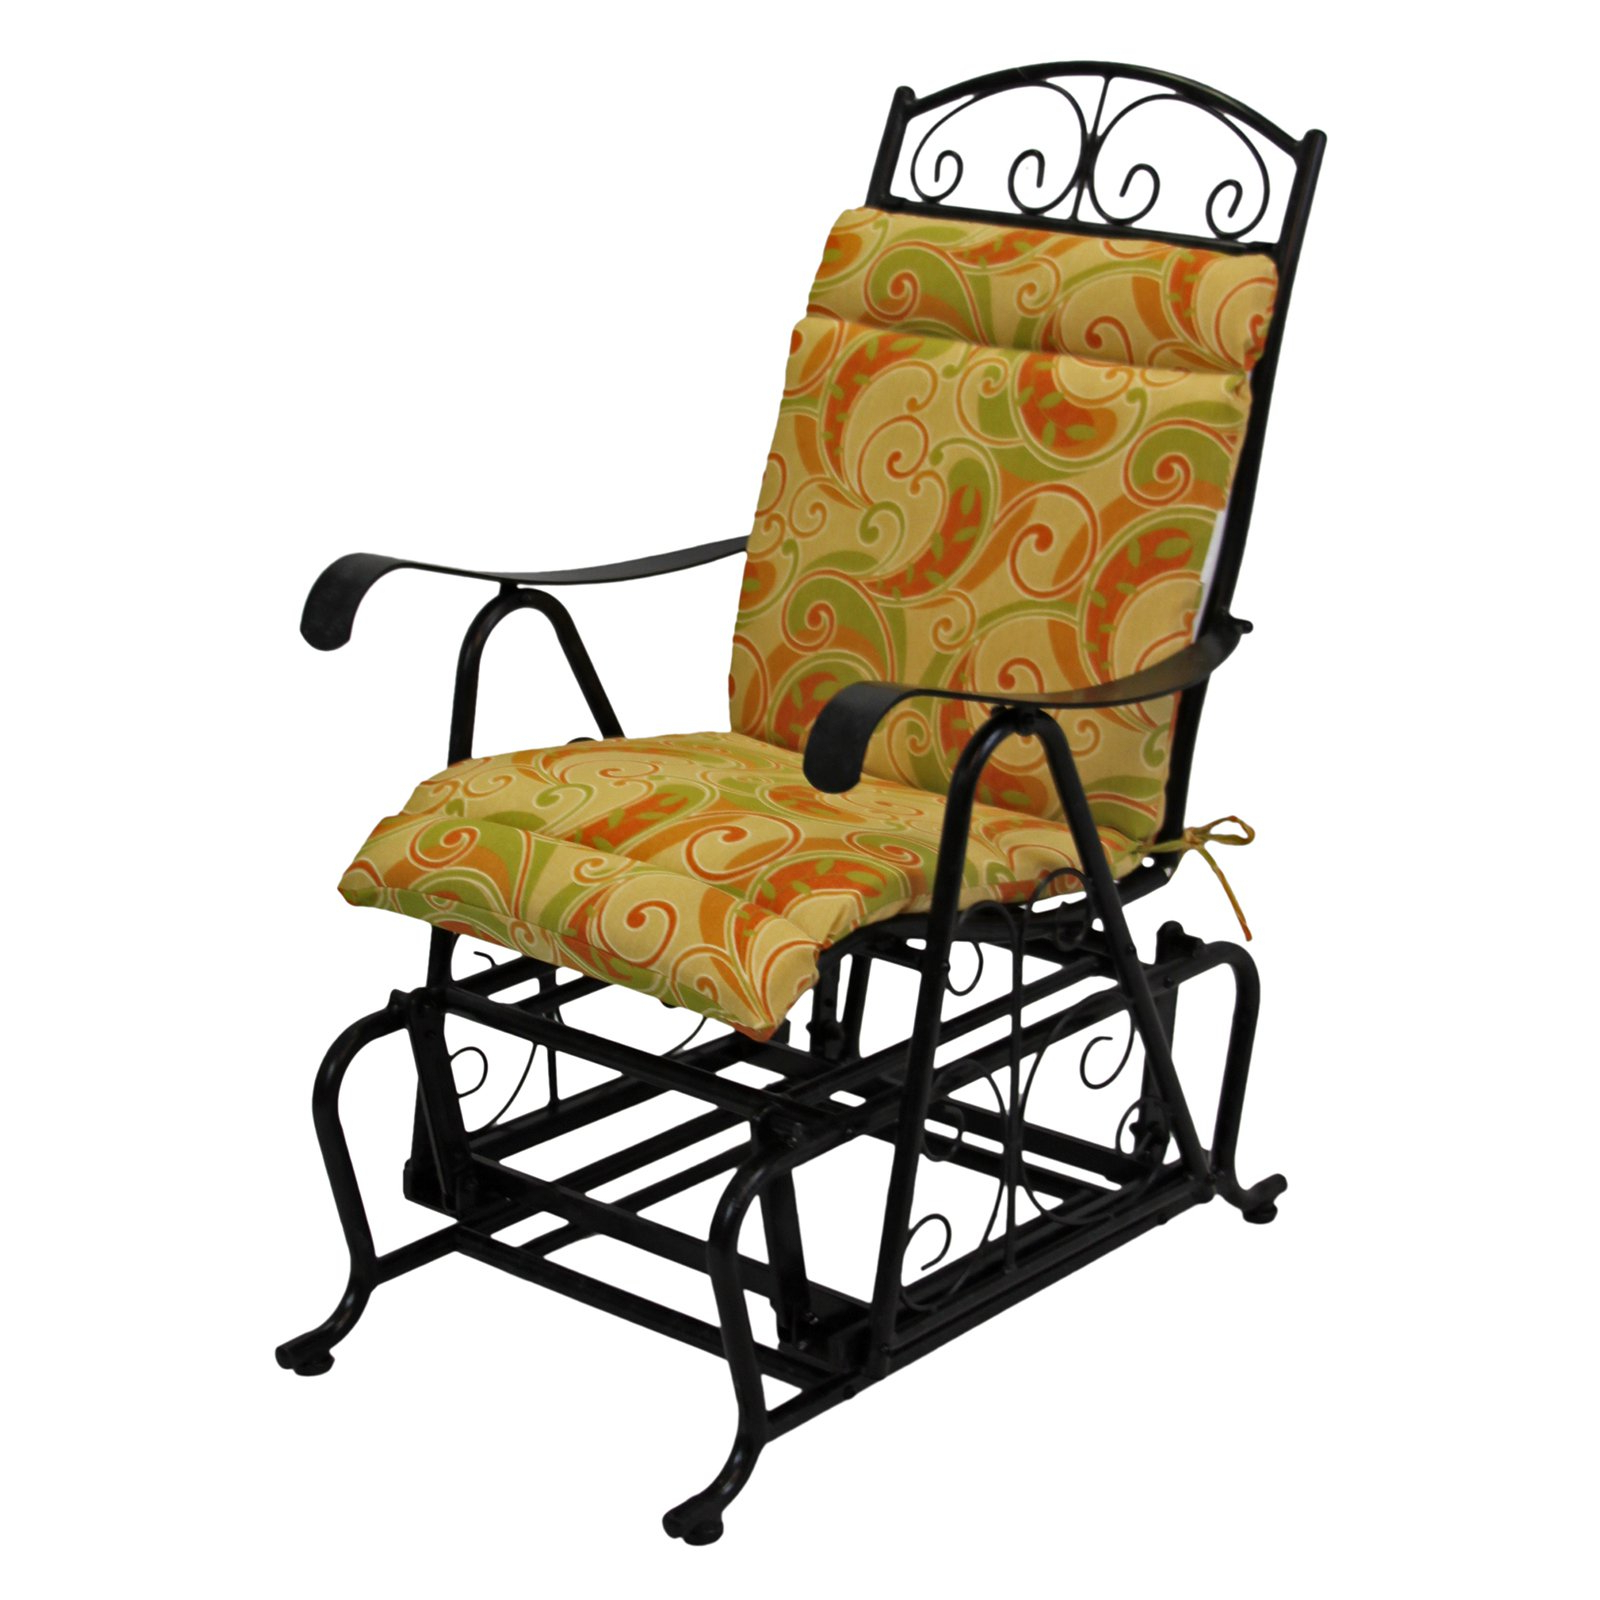 Preferred Blazing Needles Outdoor Glider Chair Hinged Seat & Back Regarding Rocking Glider Benches With Cushions (View 16 of 30)